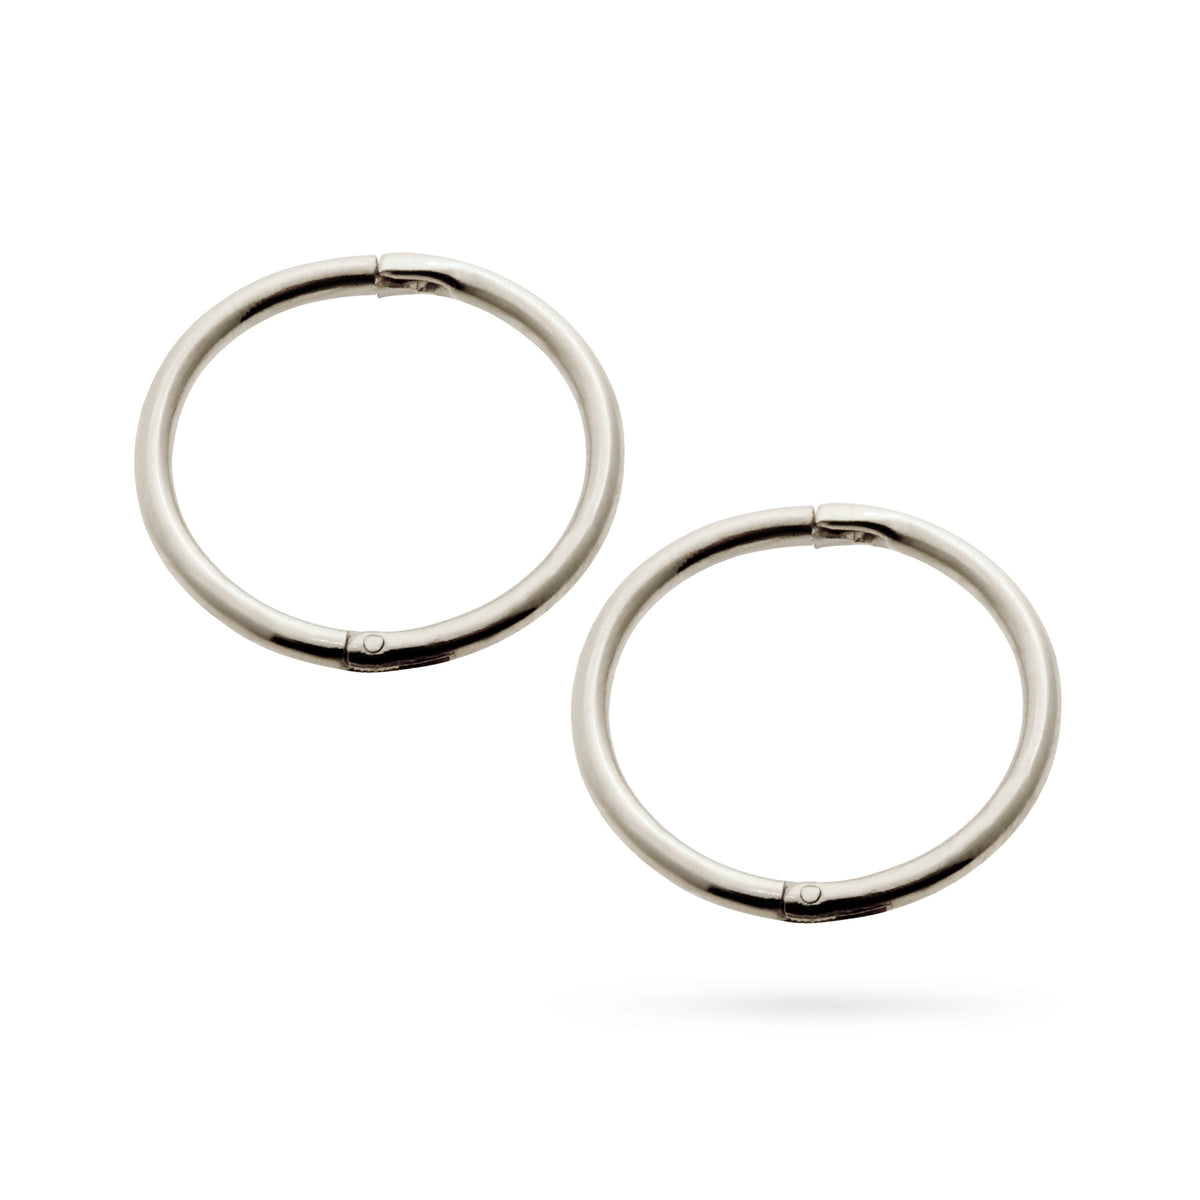 Halo Sleeper Earrings in 8mm, 10mm or 13mm